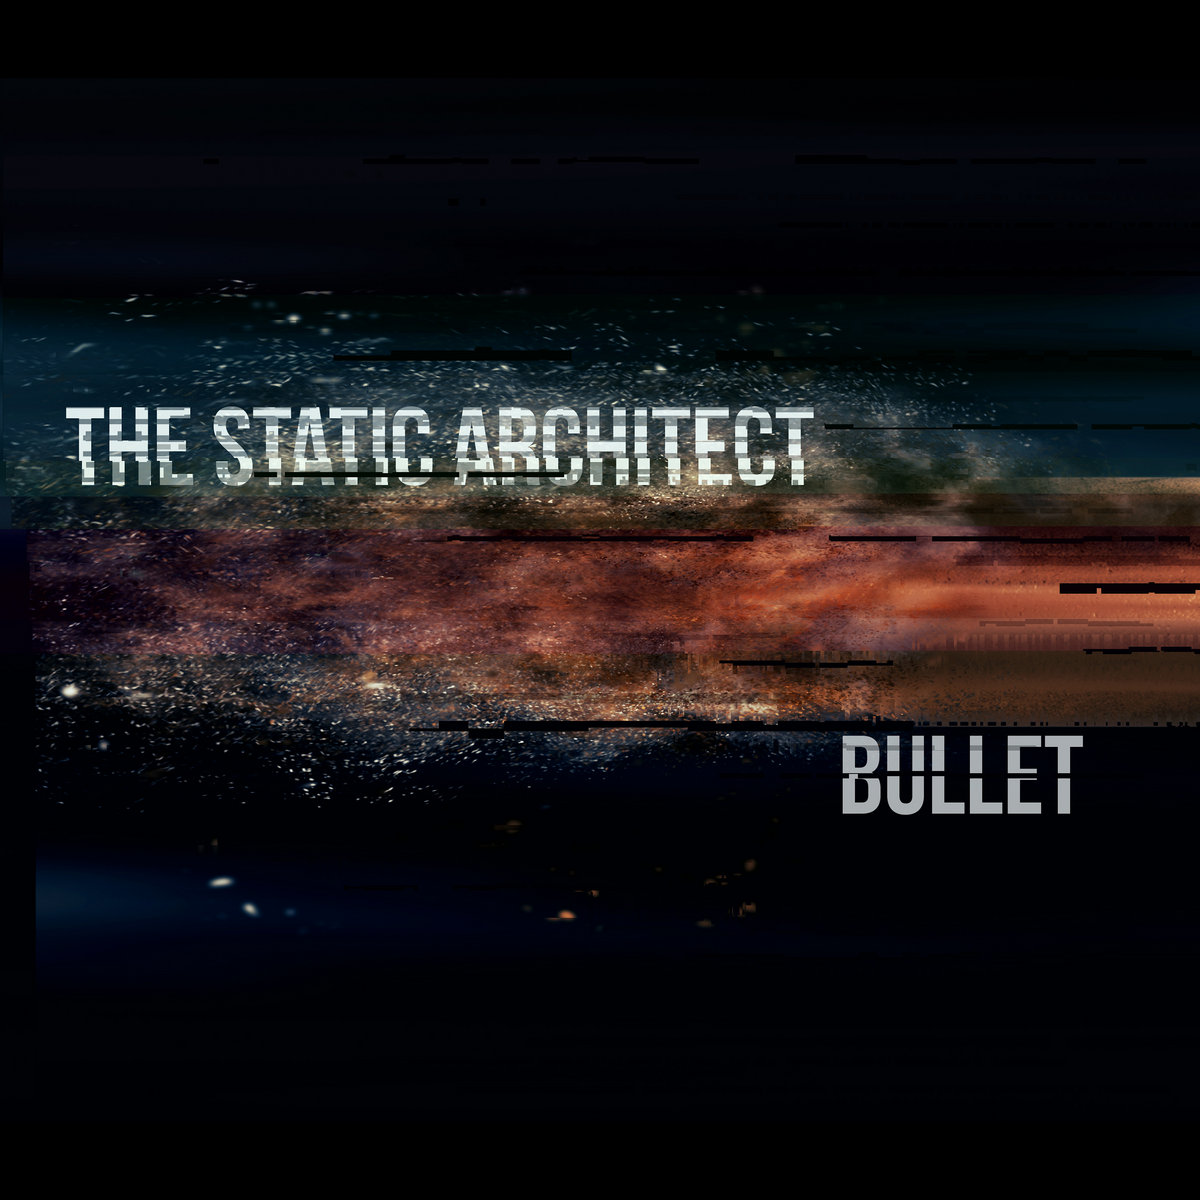 Bullet by The Static Architect